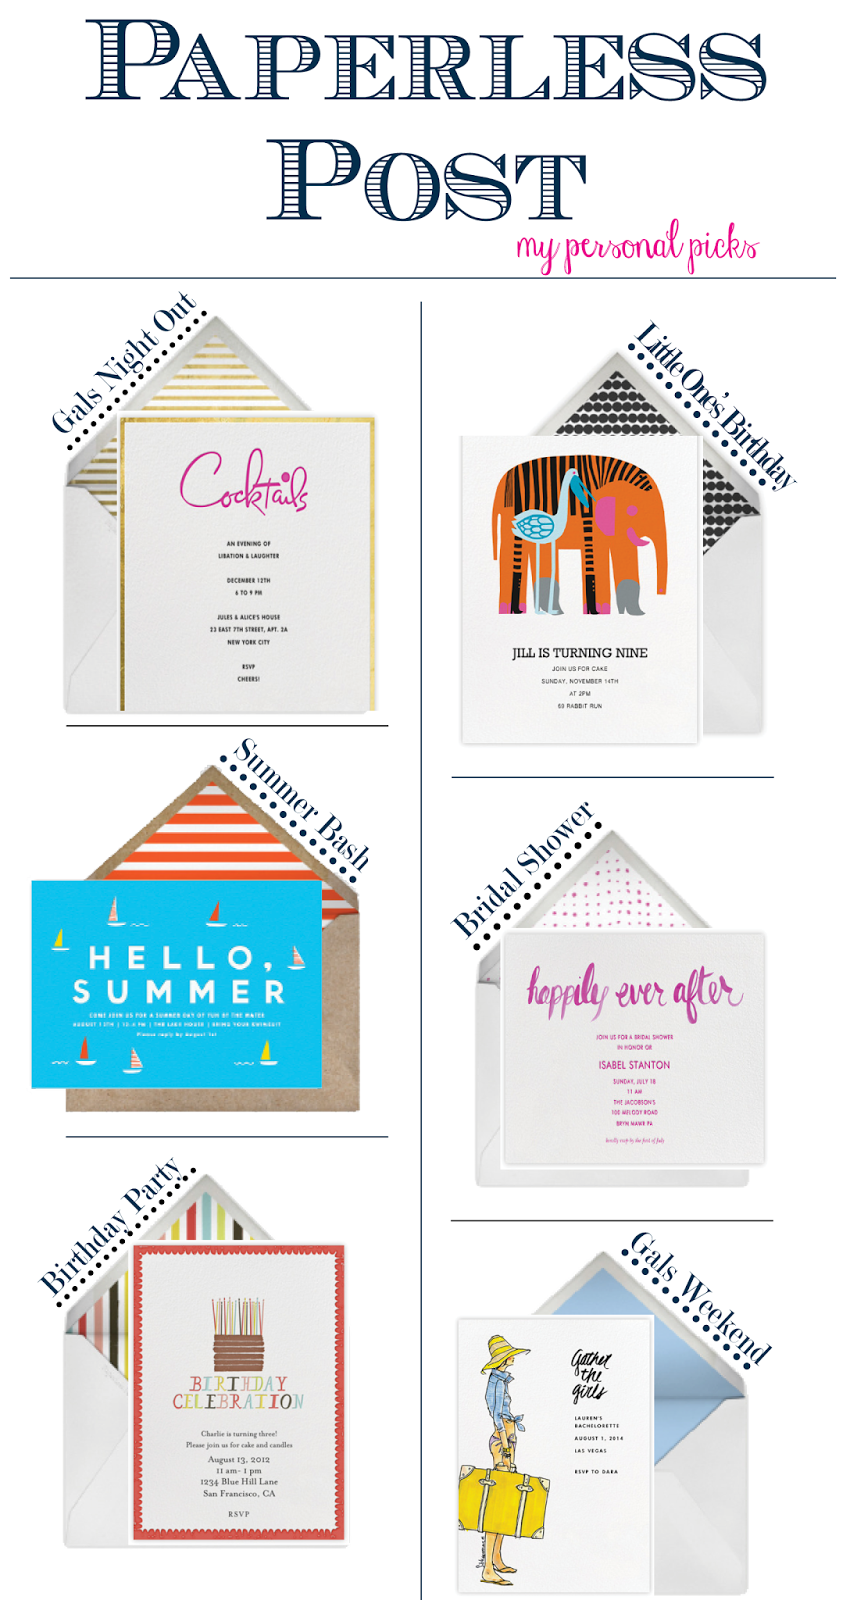 help paperless post Add or remove stationery in your email make your emails festive by adding a background design to any of your messages personalize emails using stationery patterns for birthdays, holidays, and everyday decorative flair.